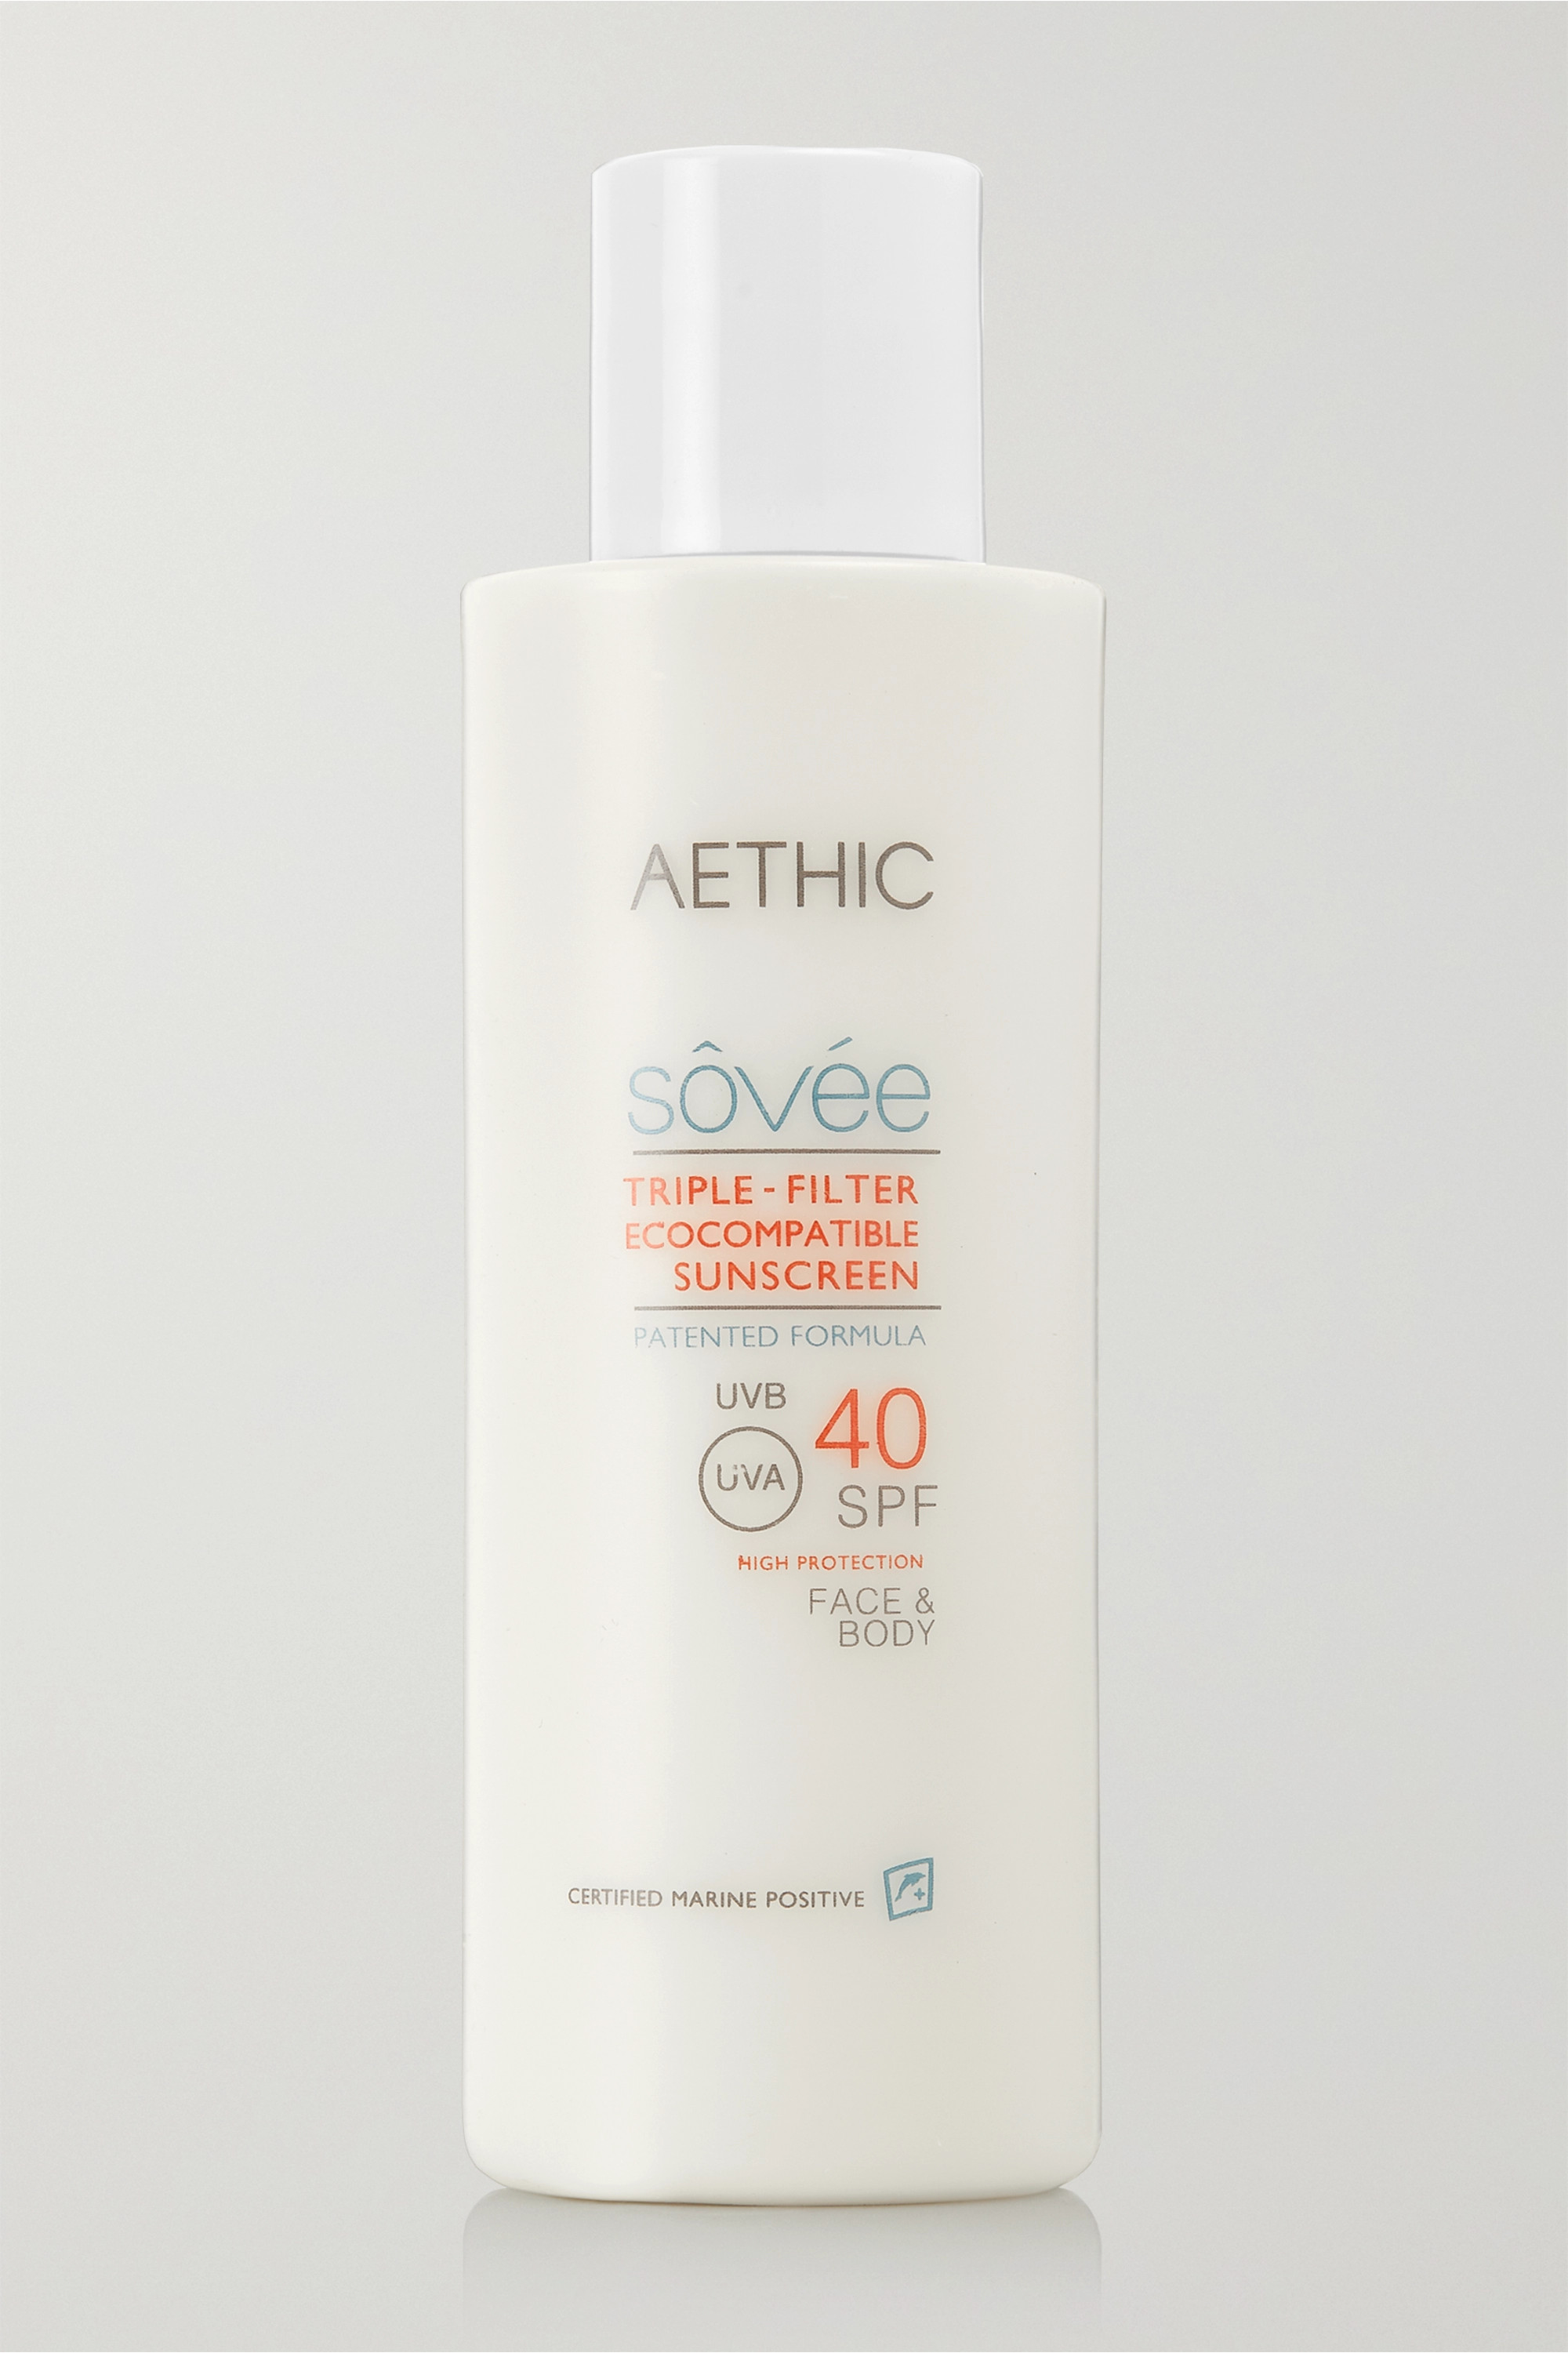 AETHIC Triple-Filter Ecocompatible Sunscreen SPF40, 150ml